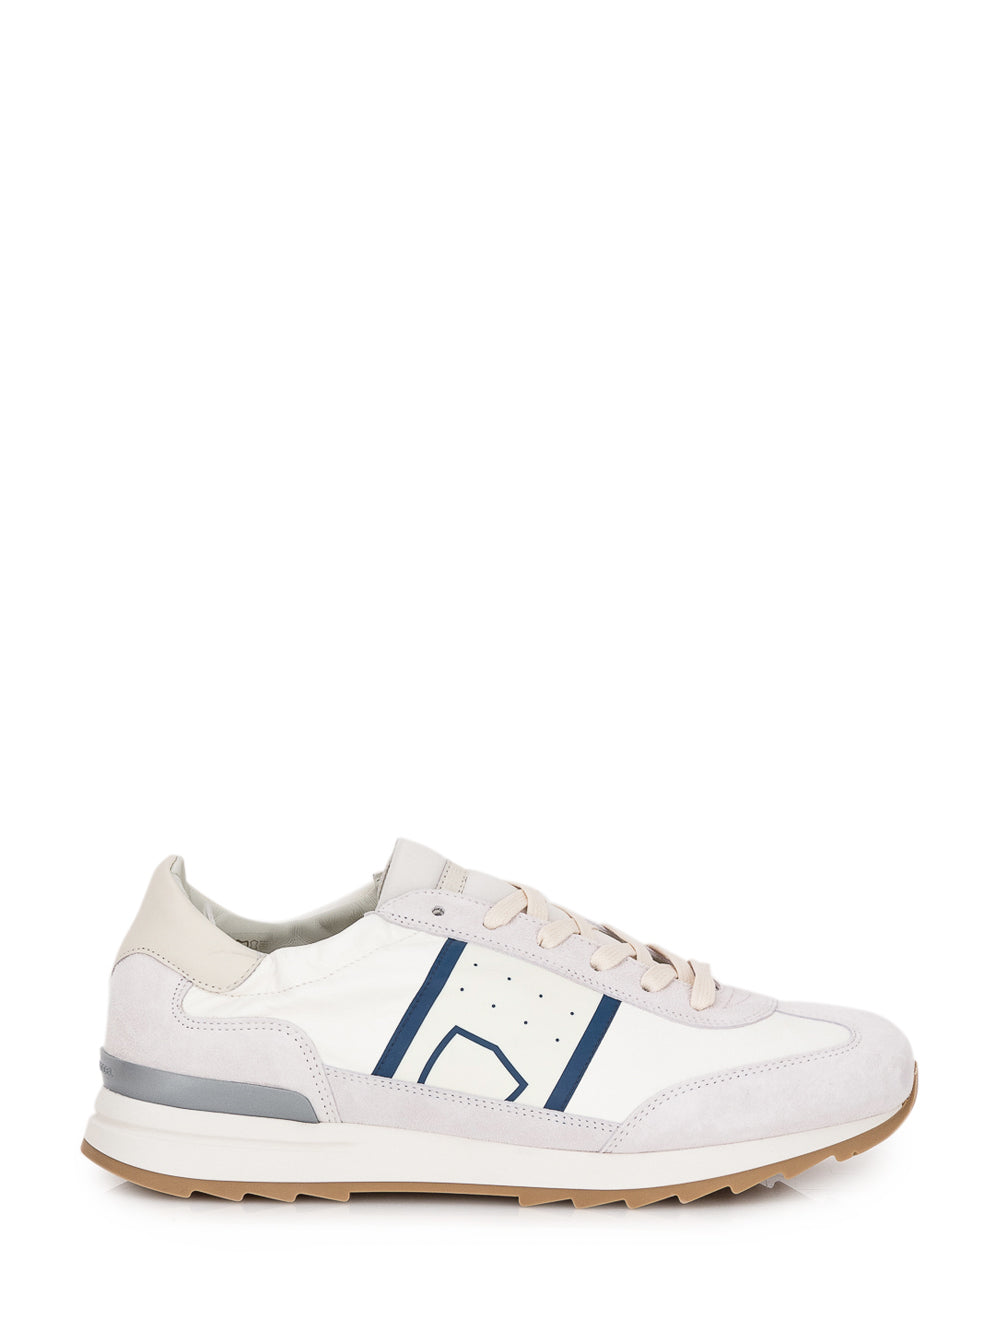 Philippe Model Toujours Sneakers In White